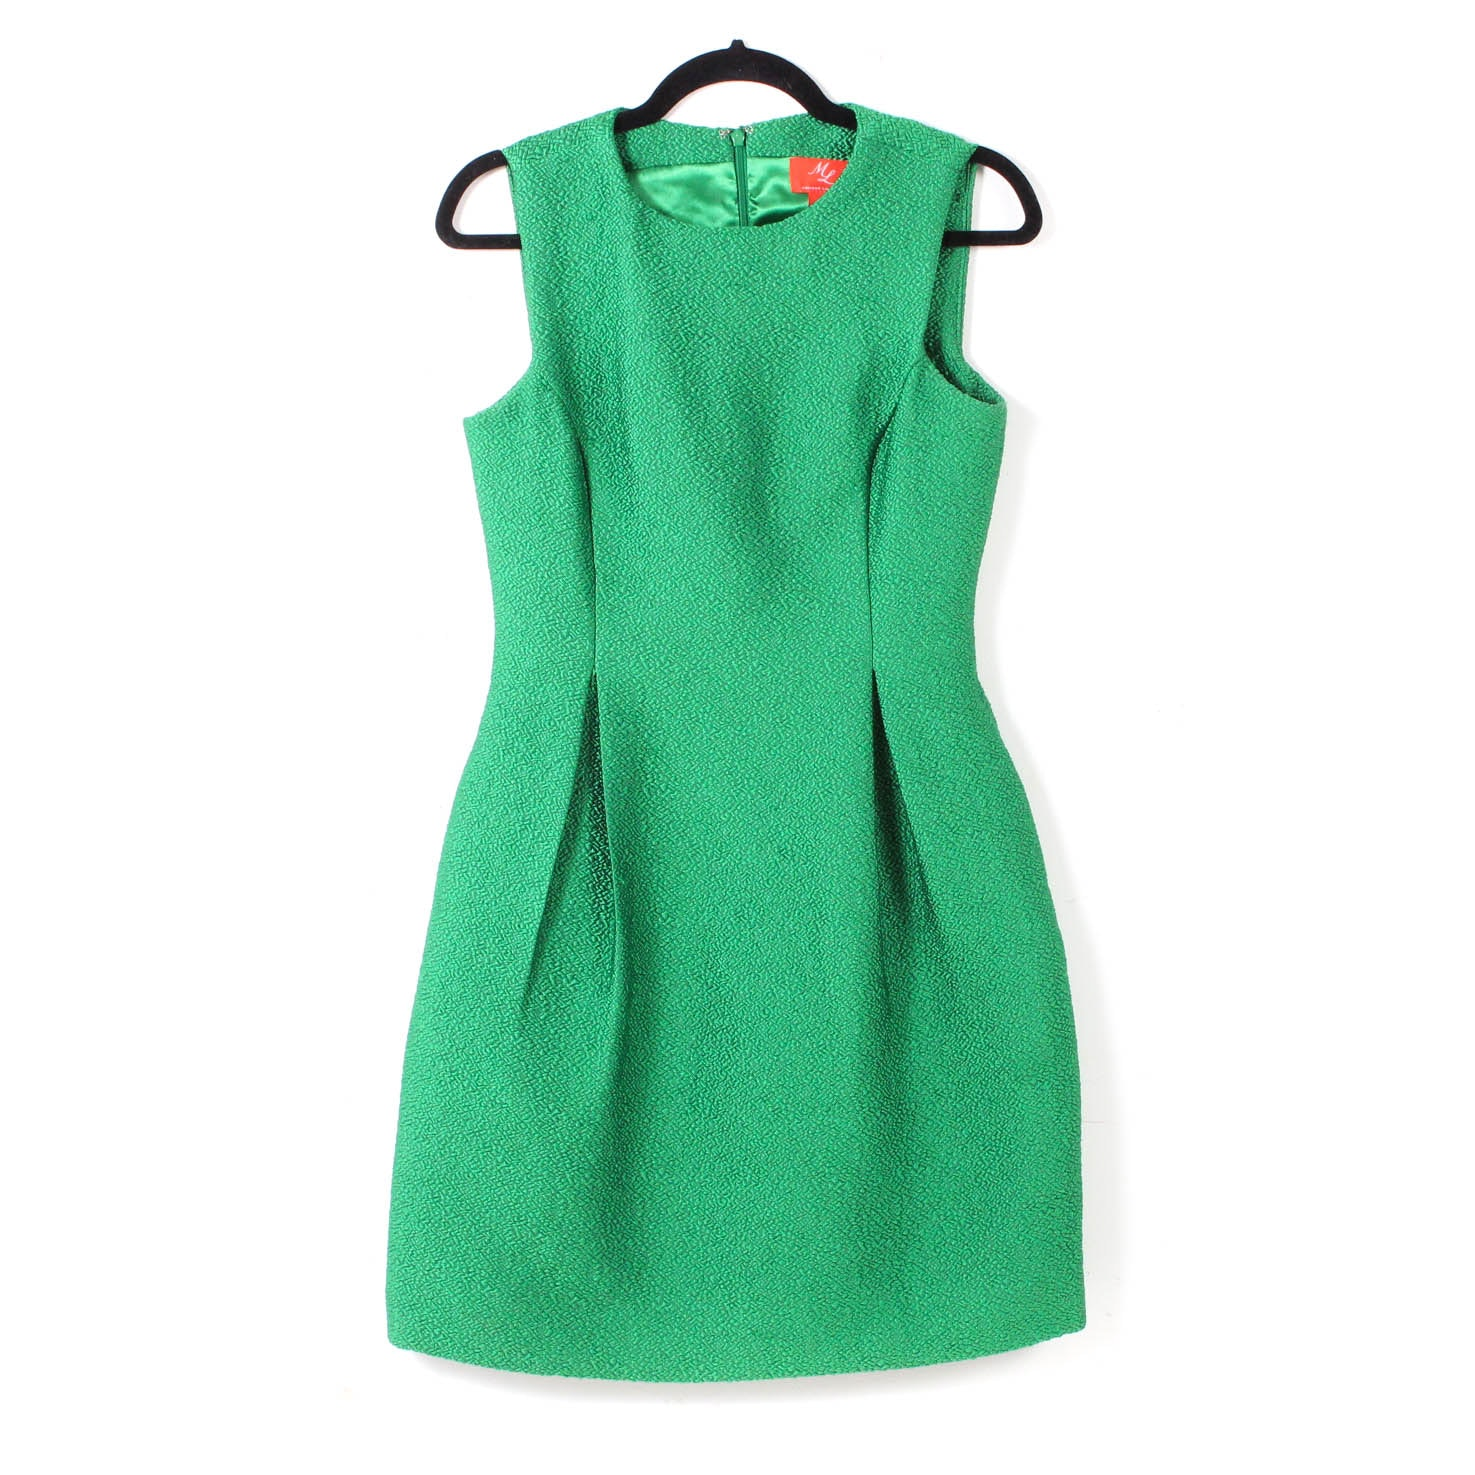 Monique Lhuillier Textured Fit and Flare Green Sleeveless Dress